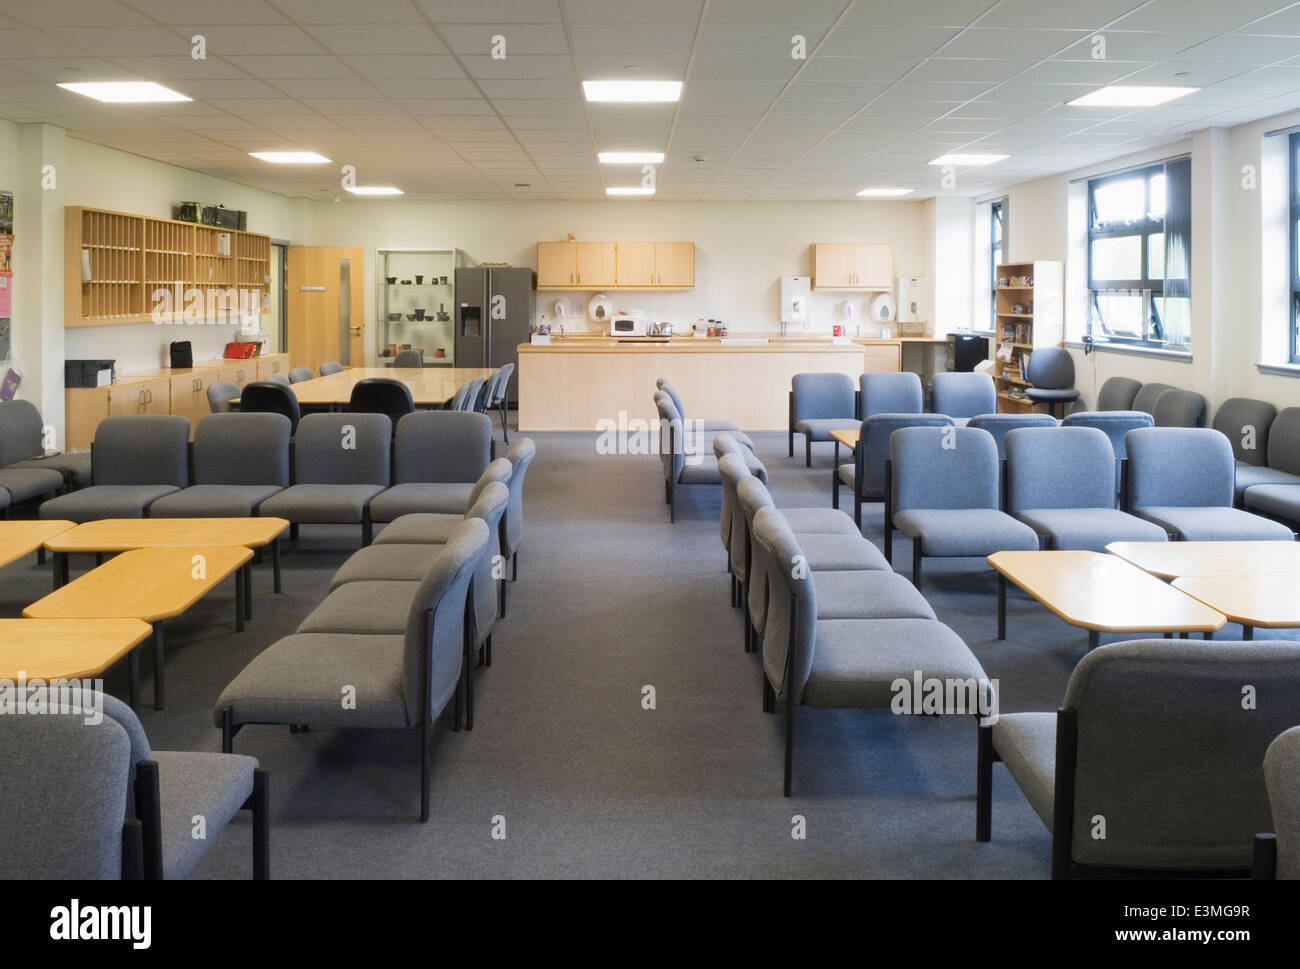 Staff Room or Teachers Lounge In A Modern Secondary